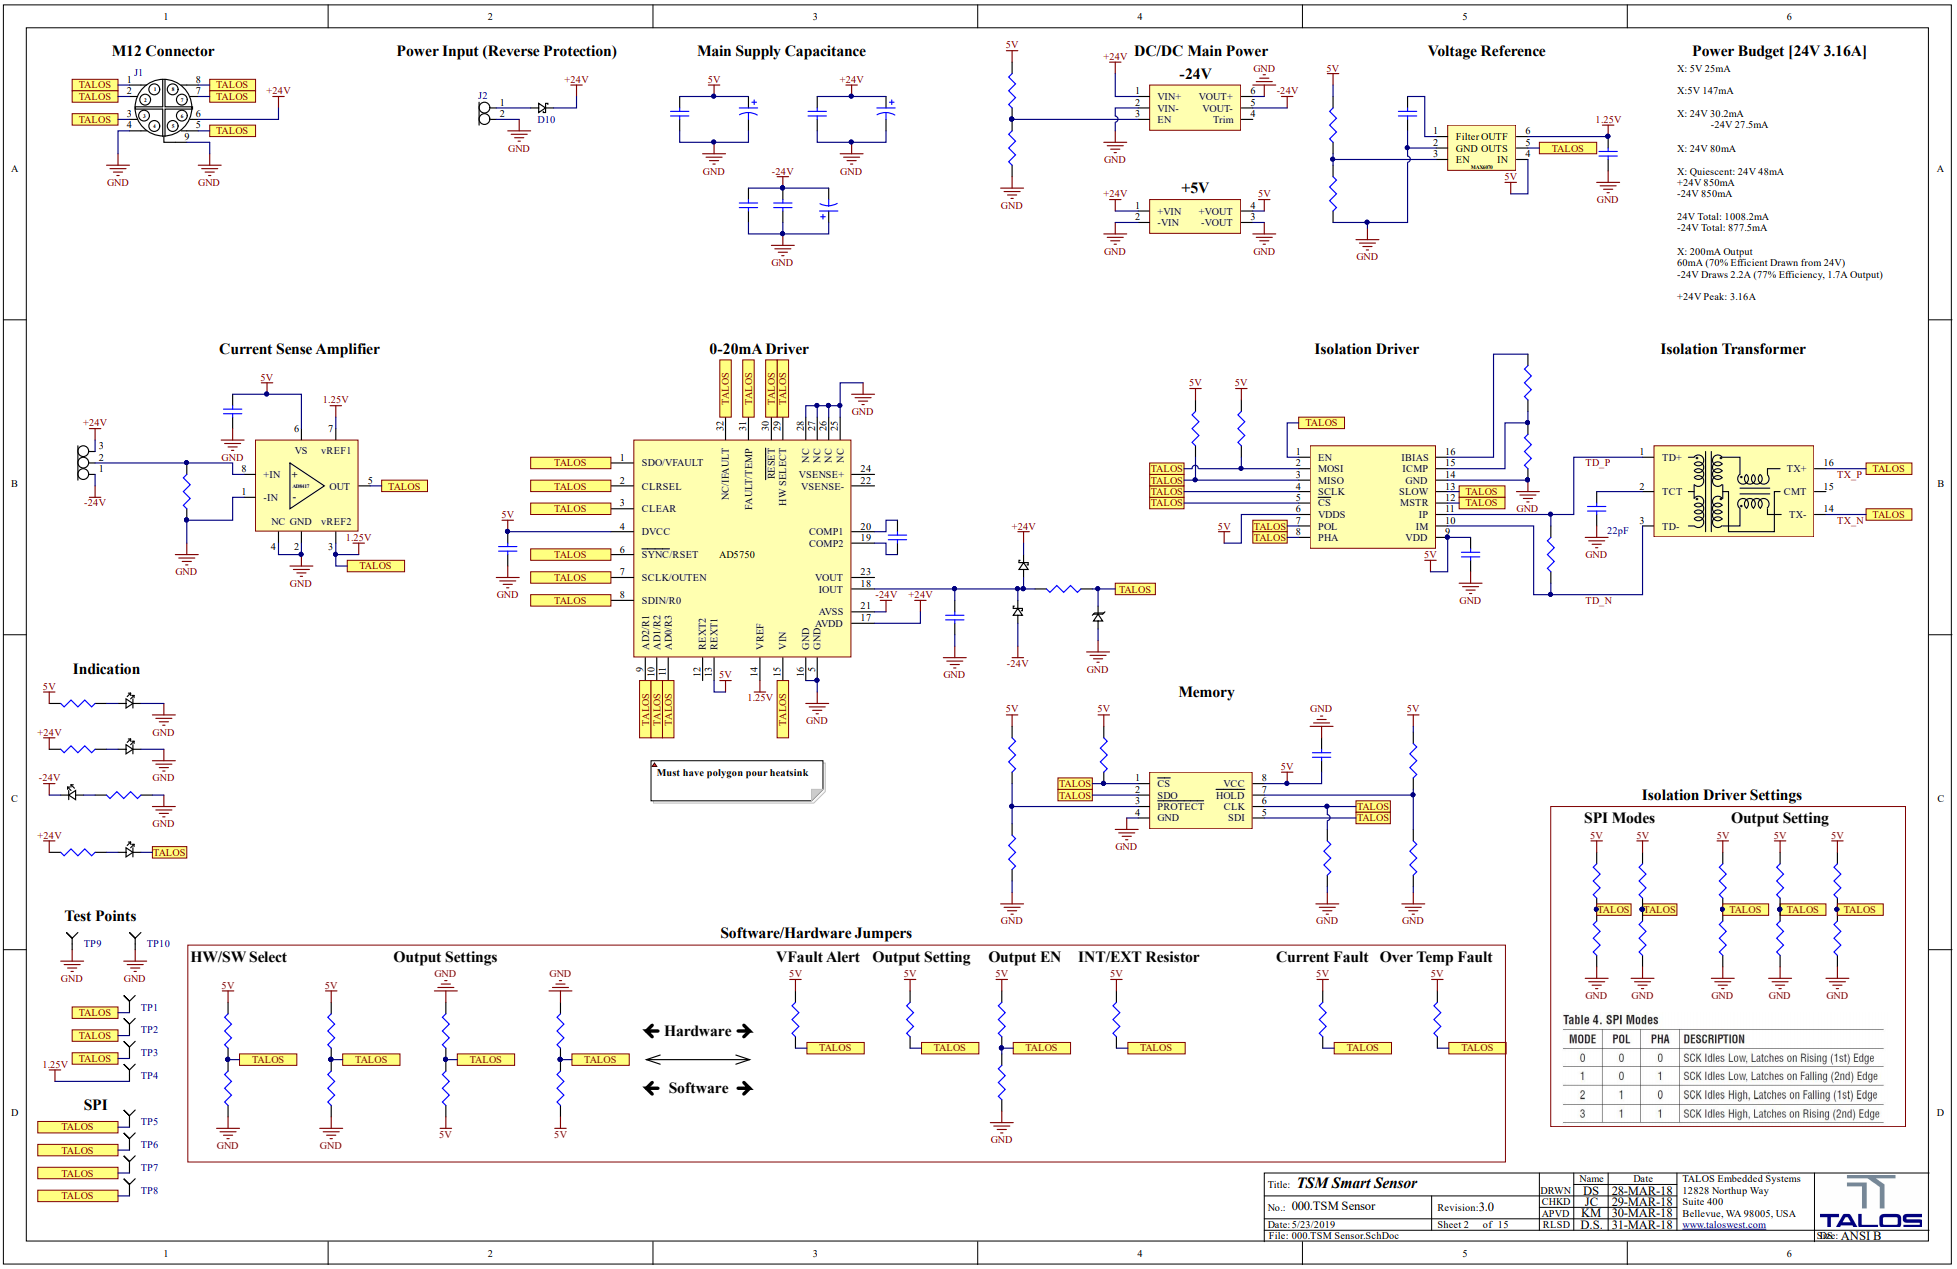 Click image to view enlarged schematic